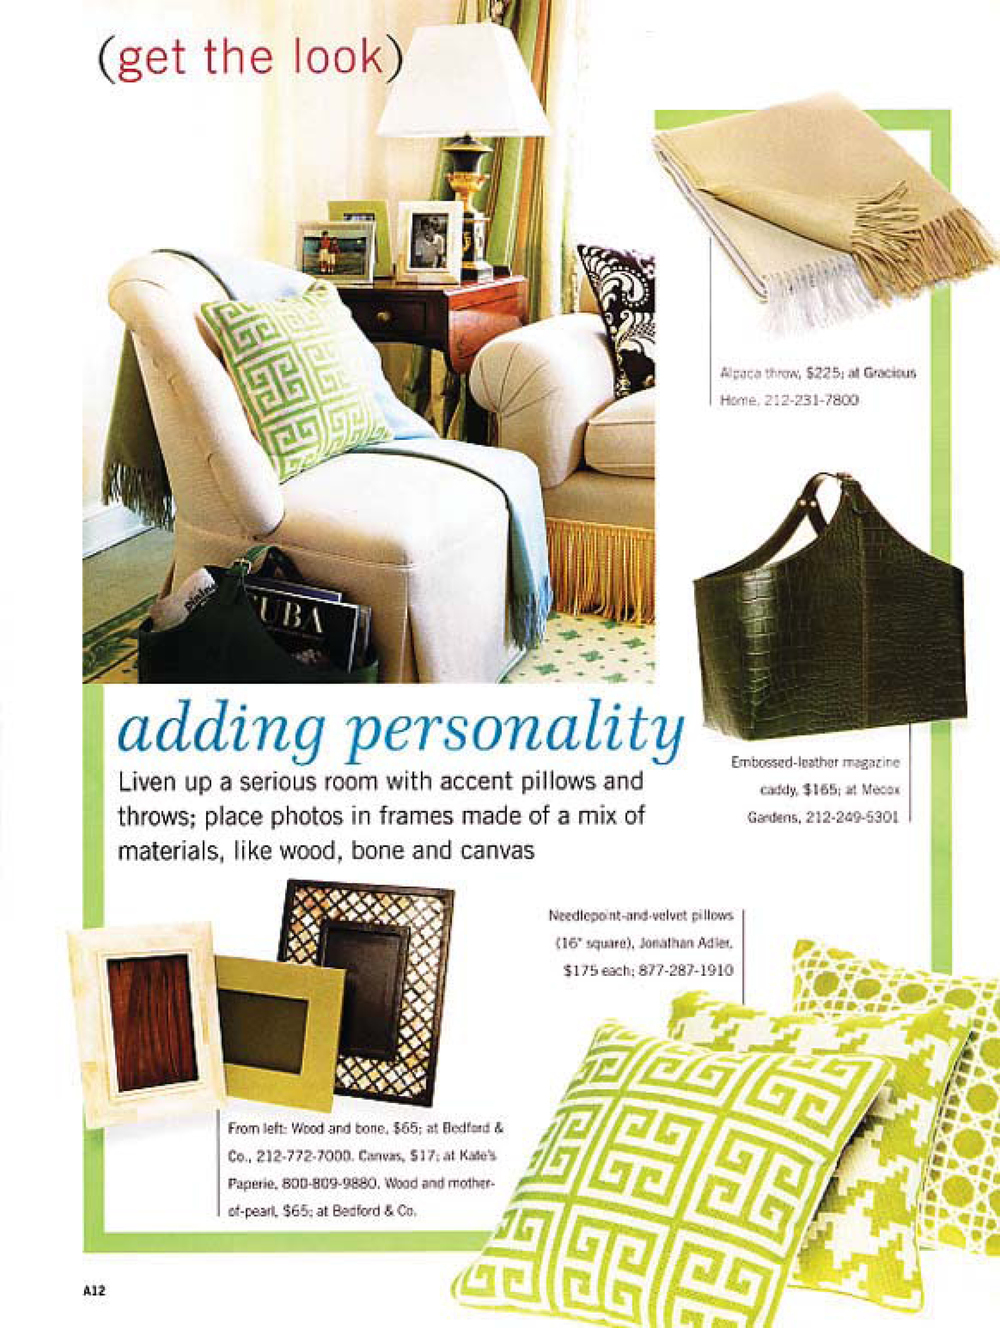 In_Style_Home_2005_Article 8.jpg